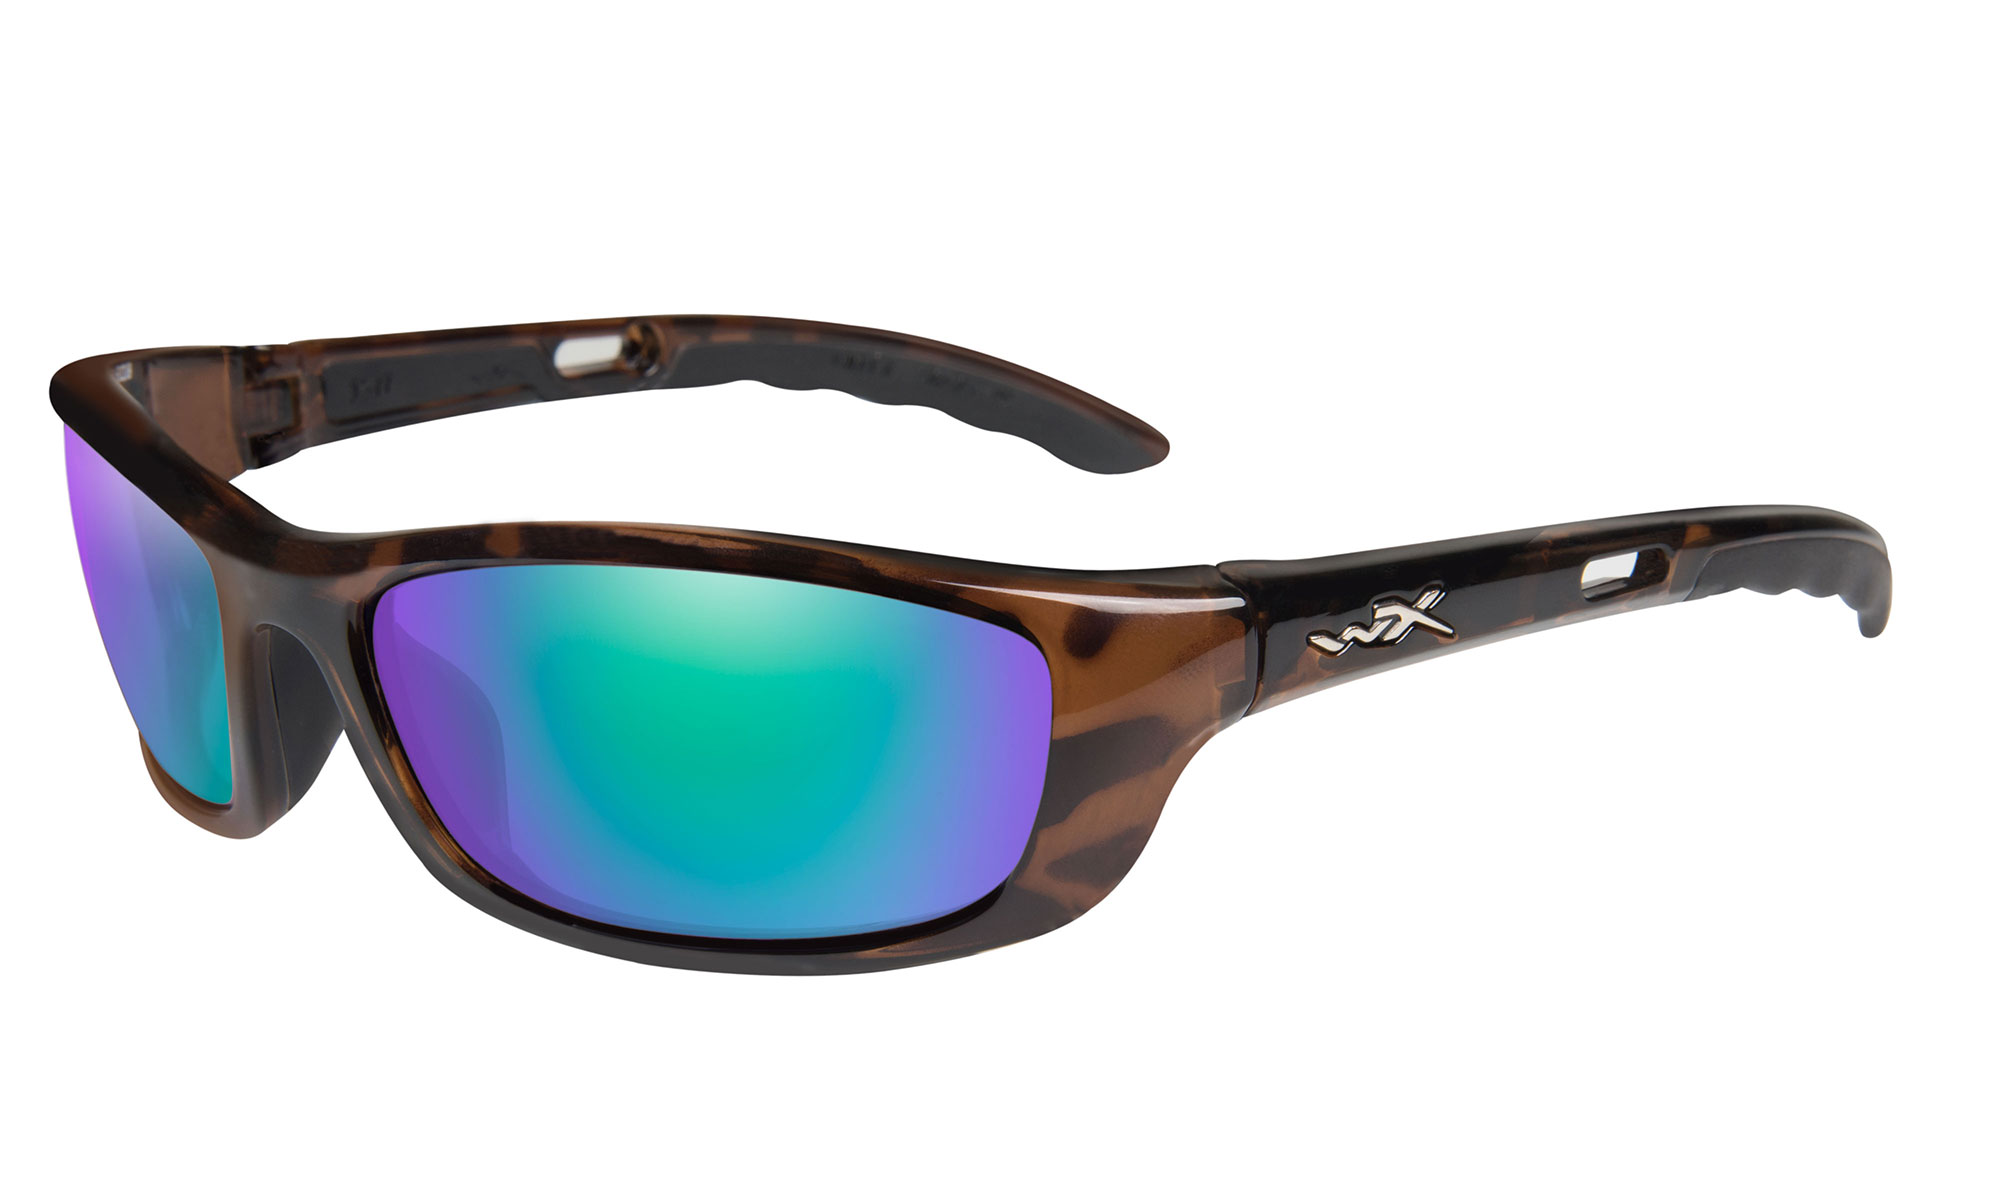 a5a84de4d773 Wiley-X P-17 Gloss Demi with Polarized Emerald Mirror Lenses | Wiley X